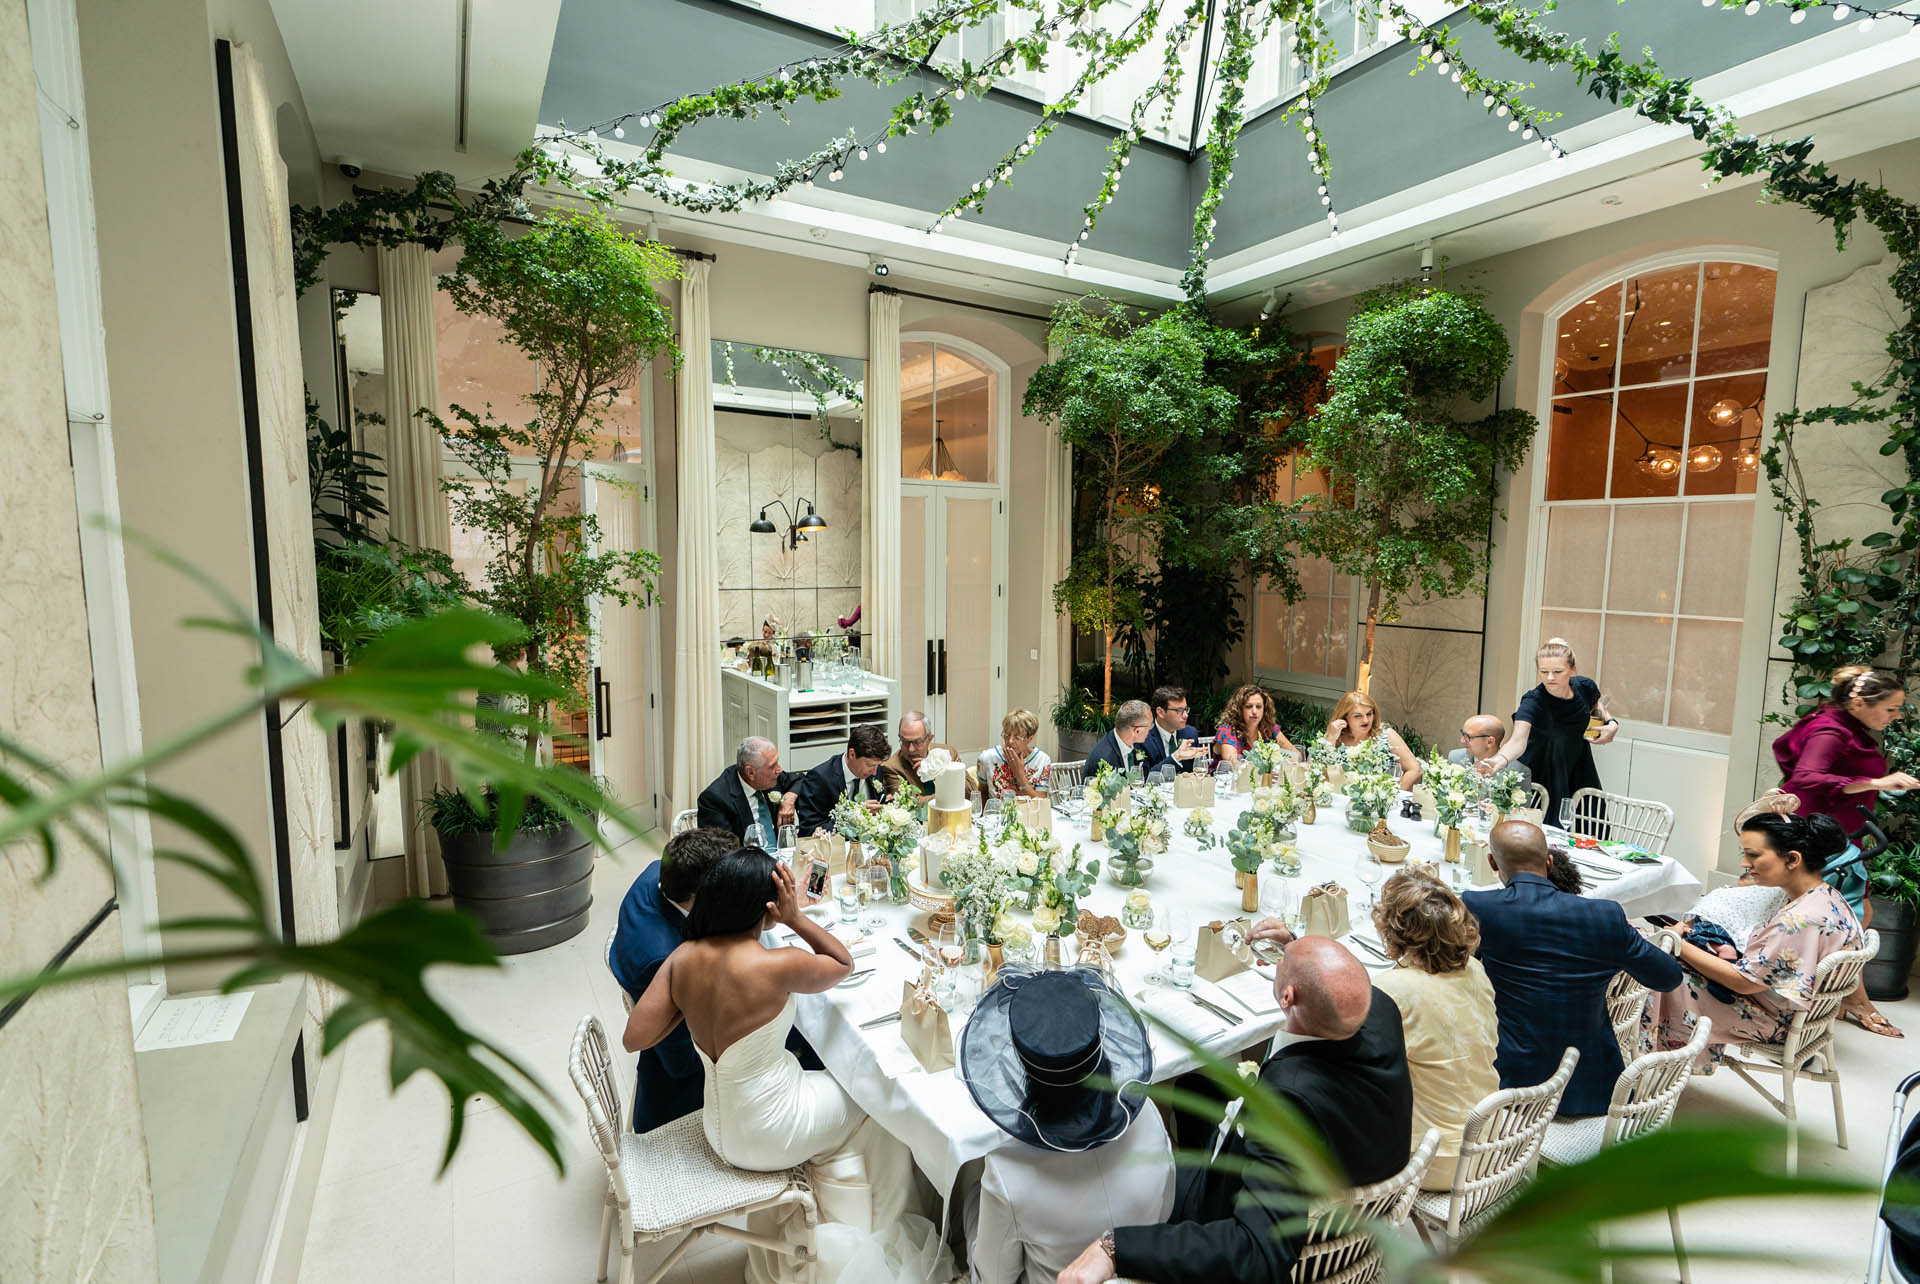 London's Somerset House Elopement Reception - Venue Event Photography | The guests enjoying a wedding feast